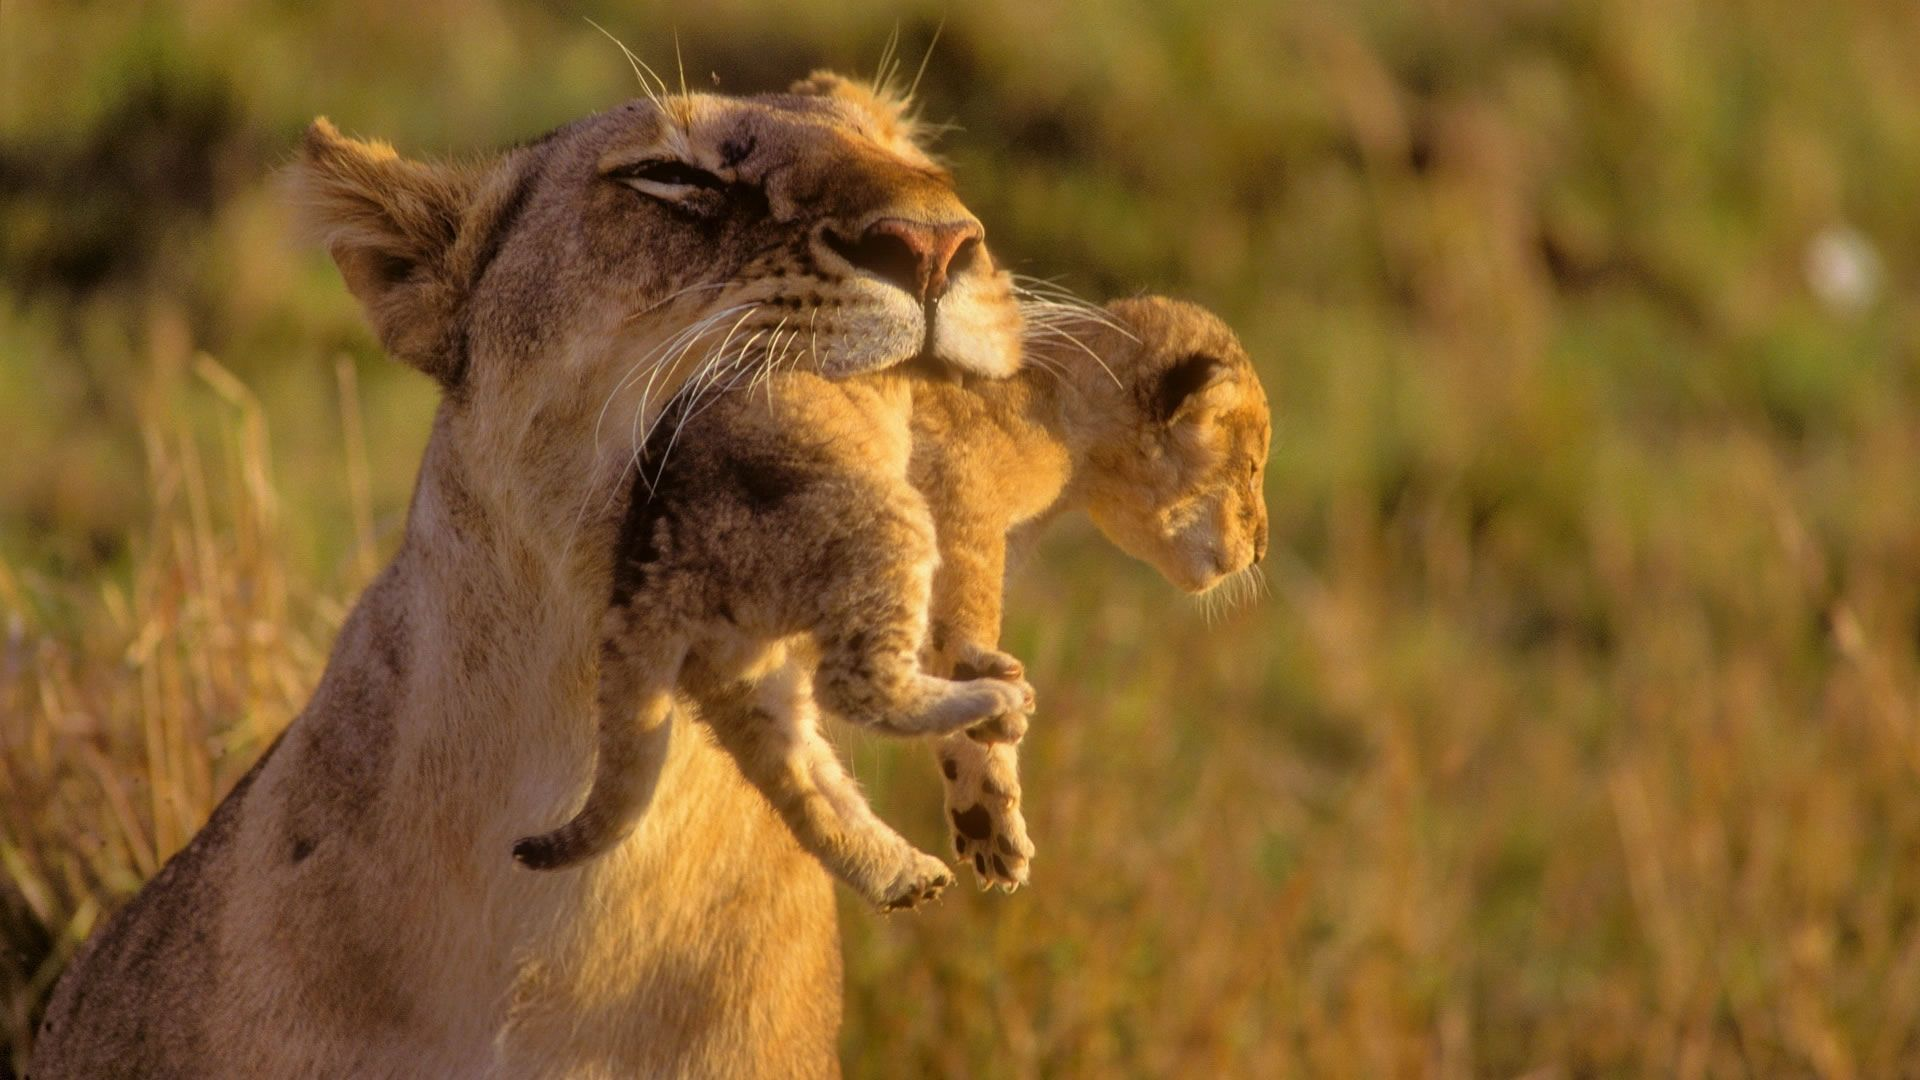 Amazing Mother Lion And Her Baby Wallpaper Animals Beautiful Cute Animals Animals